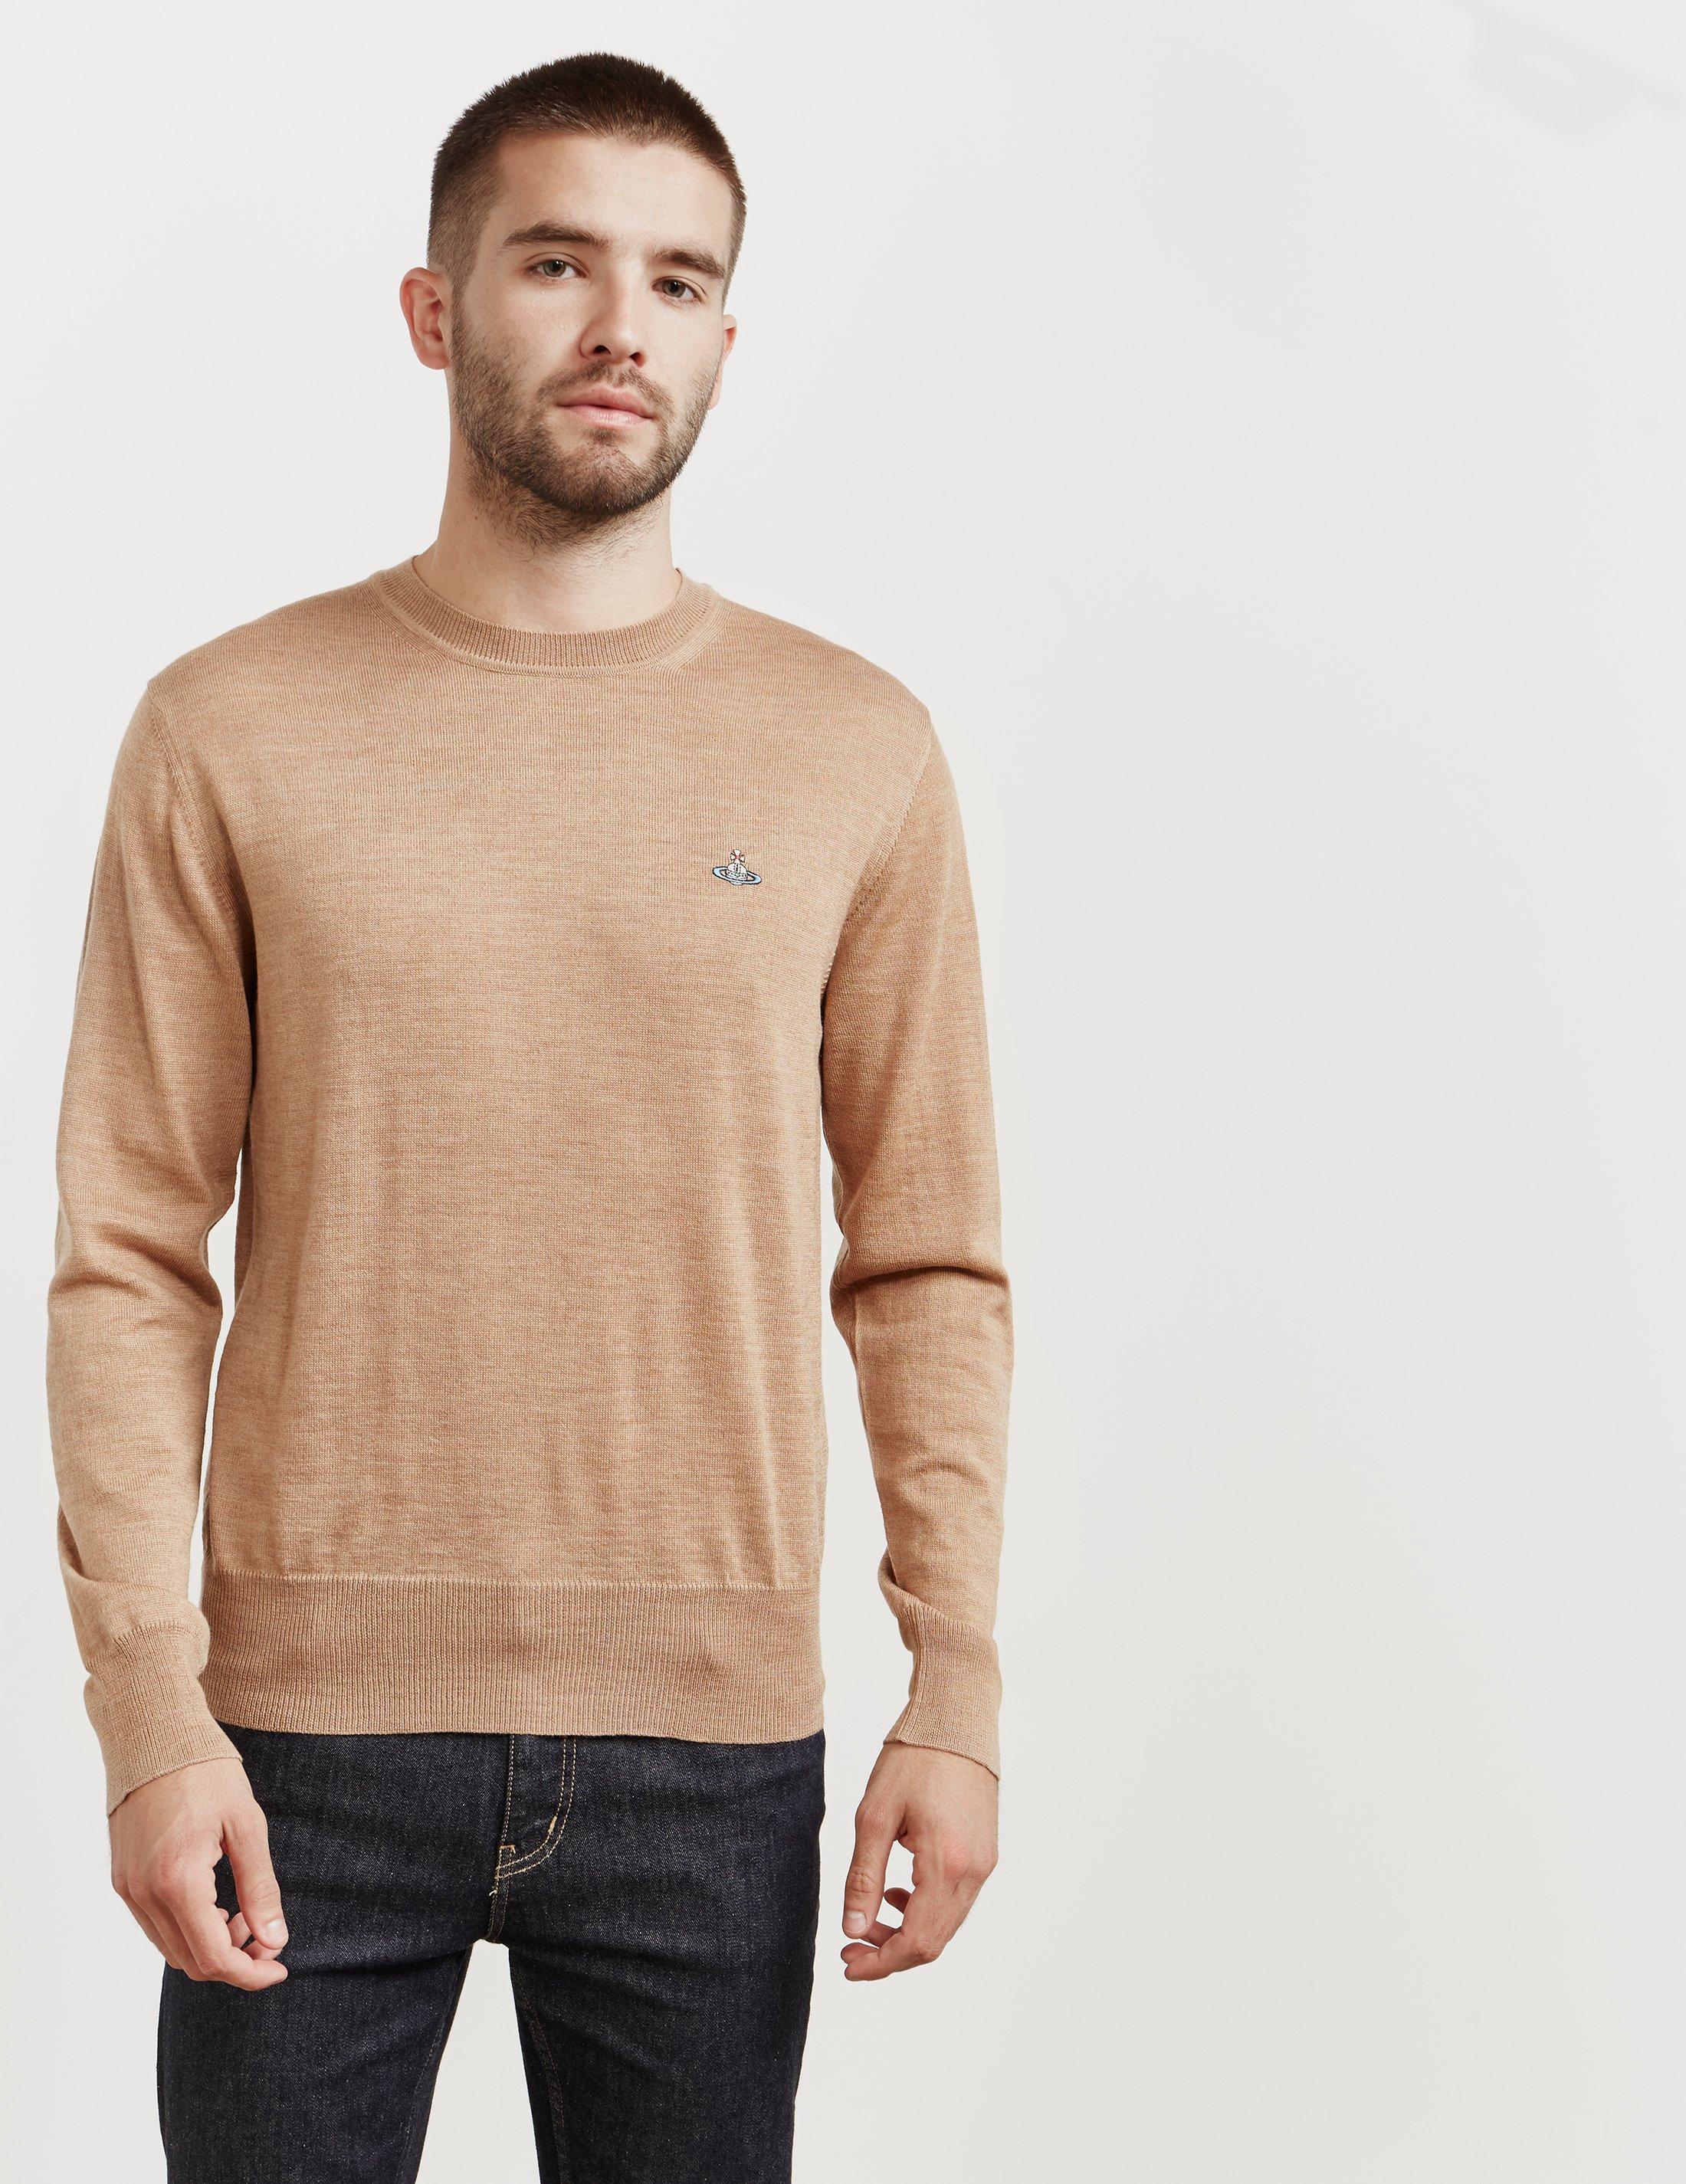 f5bde178afaad Vivienne Westwood Mens Crew Neck Knitted Jumper Brown in Brown for ...